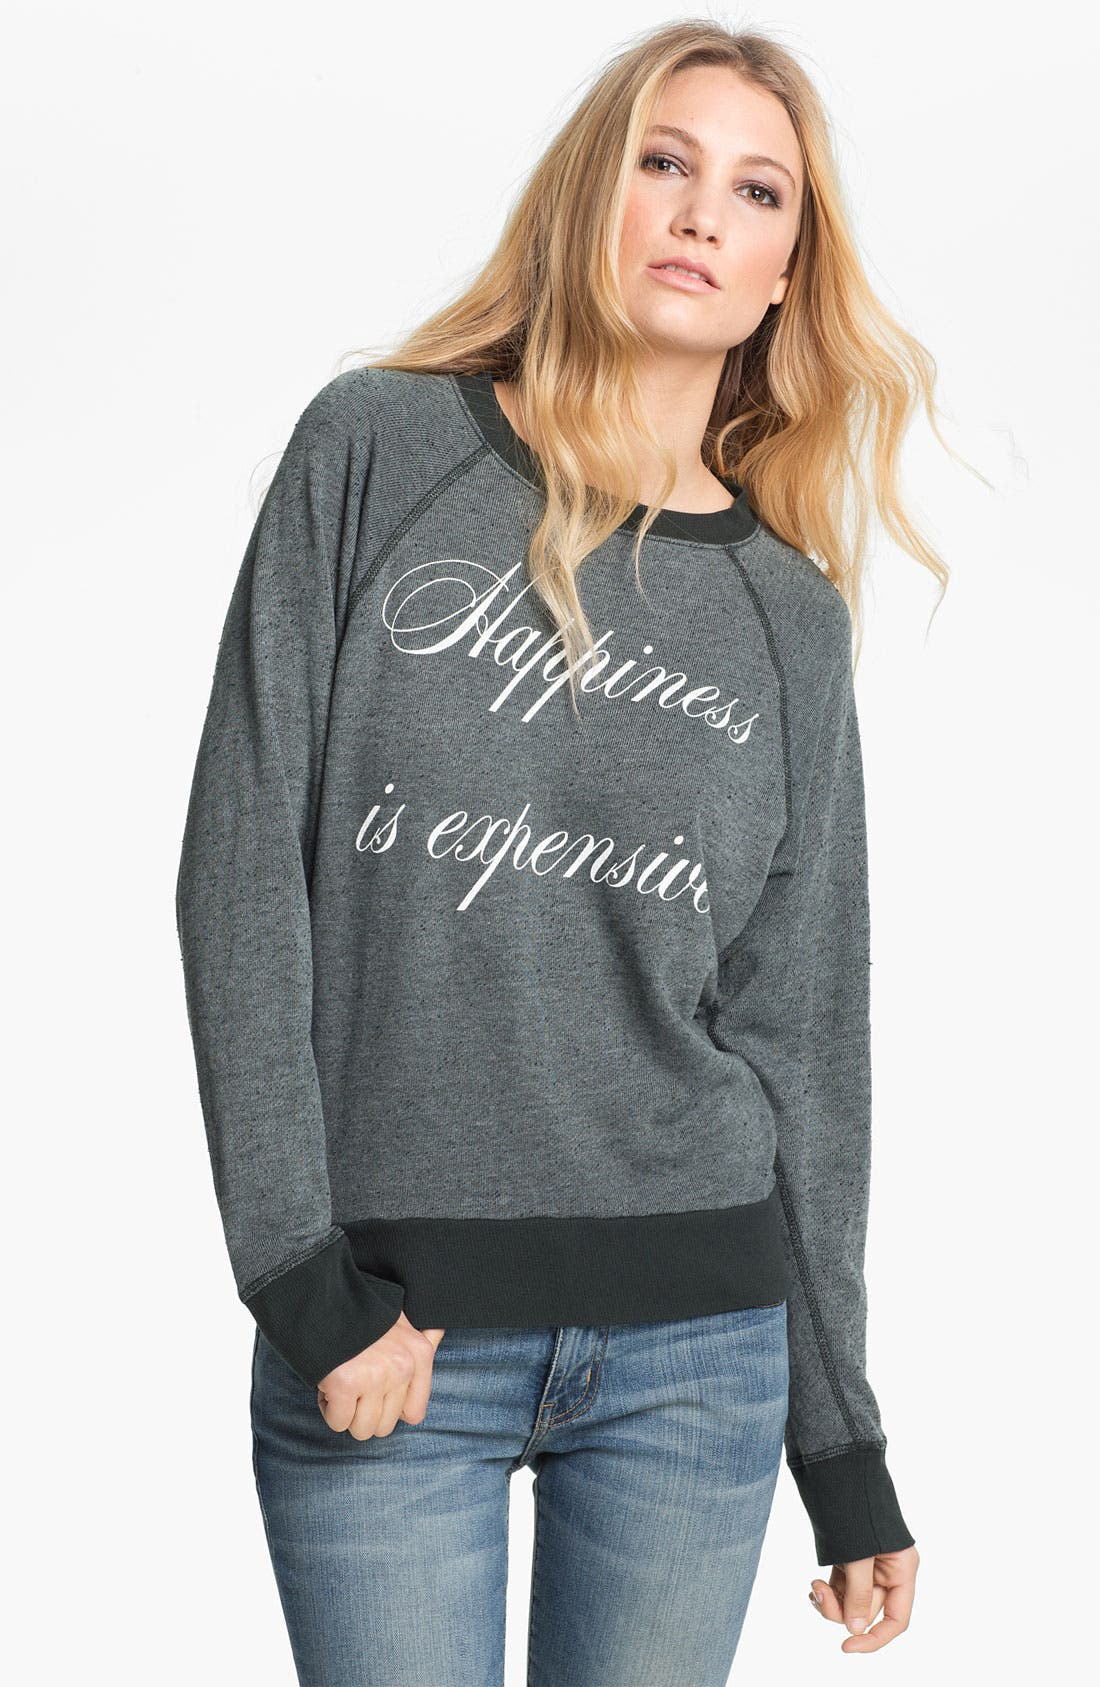 Main Image - Wildfox 'Happiness Is Expensive' Graphic Sweatshirt